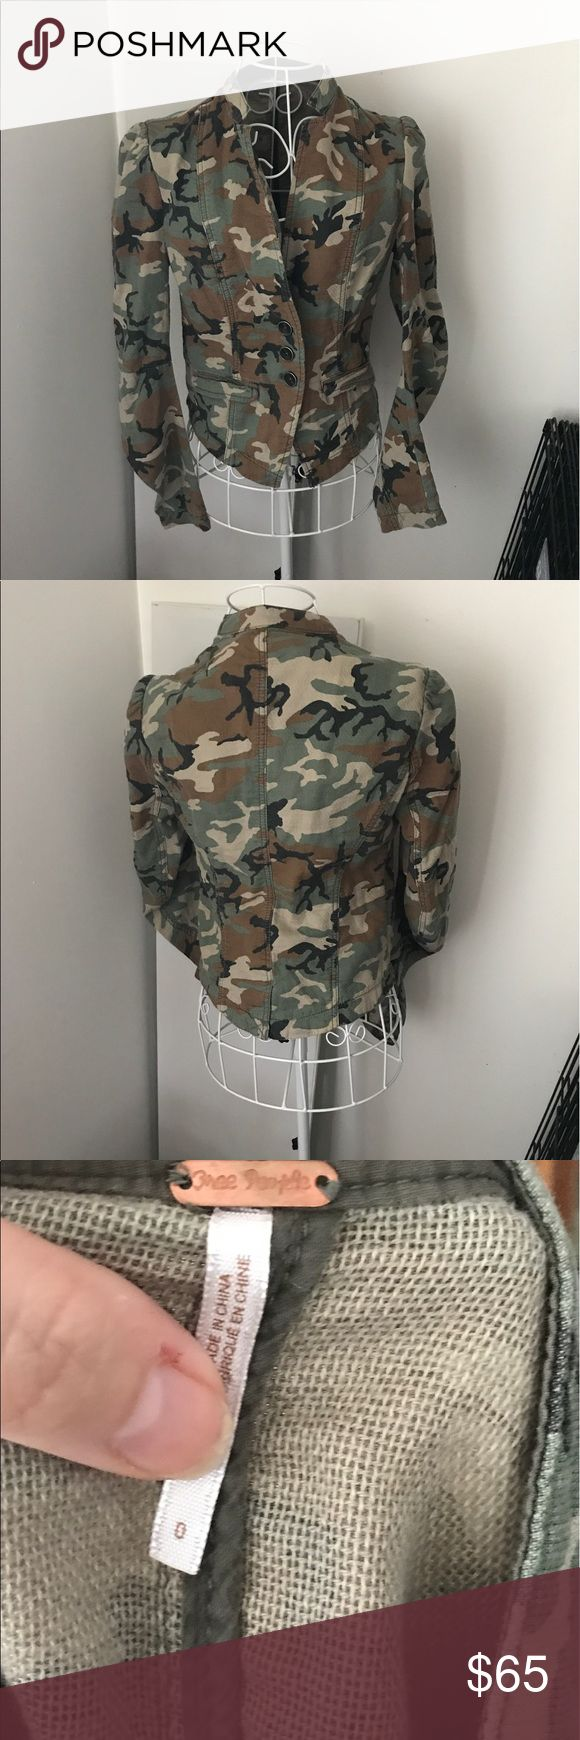 Free People camouflage jacket Faux pockets. condition as shown and reflected in price. This item is in good condition but it has been worn please ask any questions before purchasing. This item will only be traded for an autographed Authentic Chanel original, a Lamborghini, a penthouse in Paris, or the services of an Audi mechanic. All orders will be recorded before shipping. I do not model. Please see my reasonable offer chart before submitting an offer. Free People Jackets & Coats